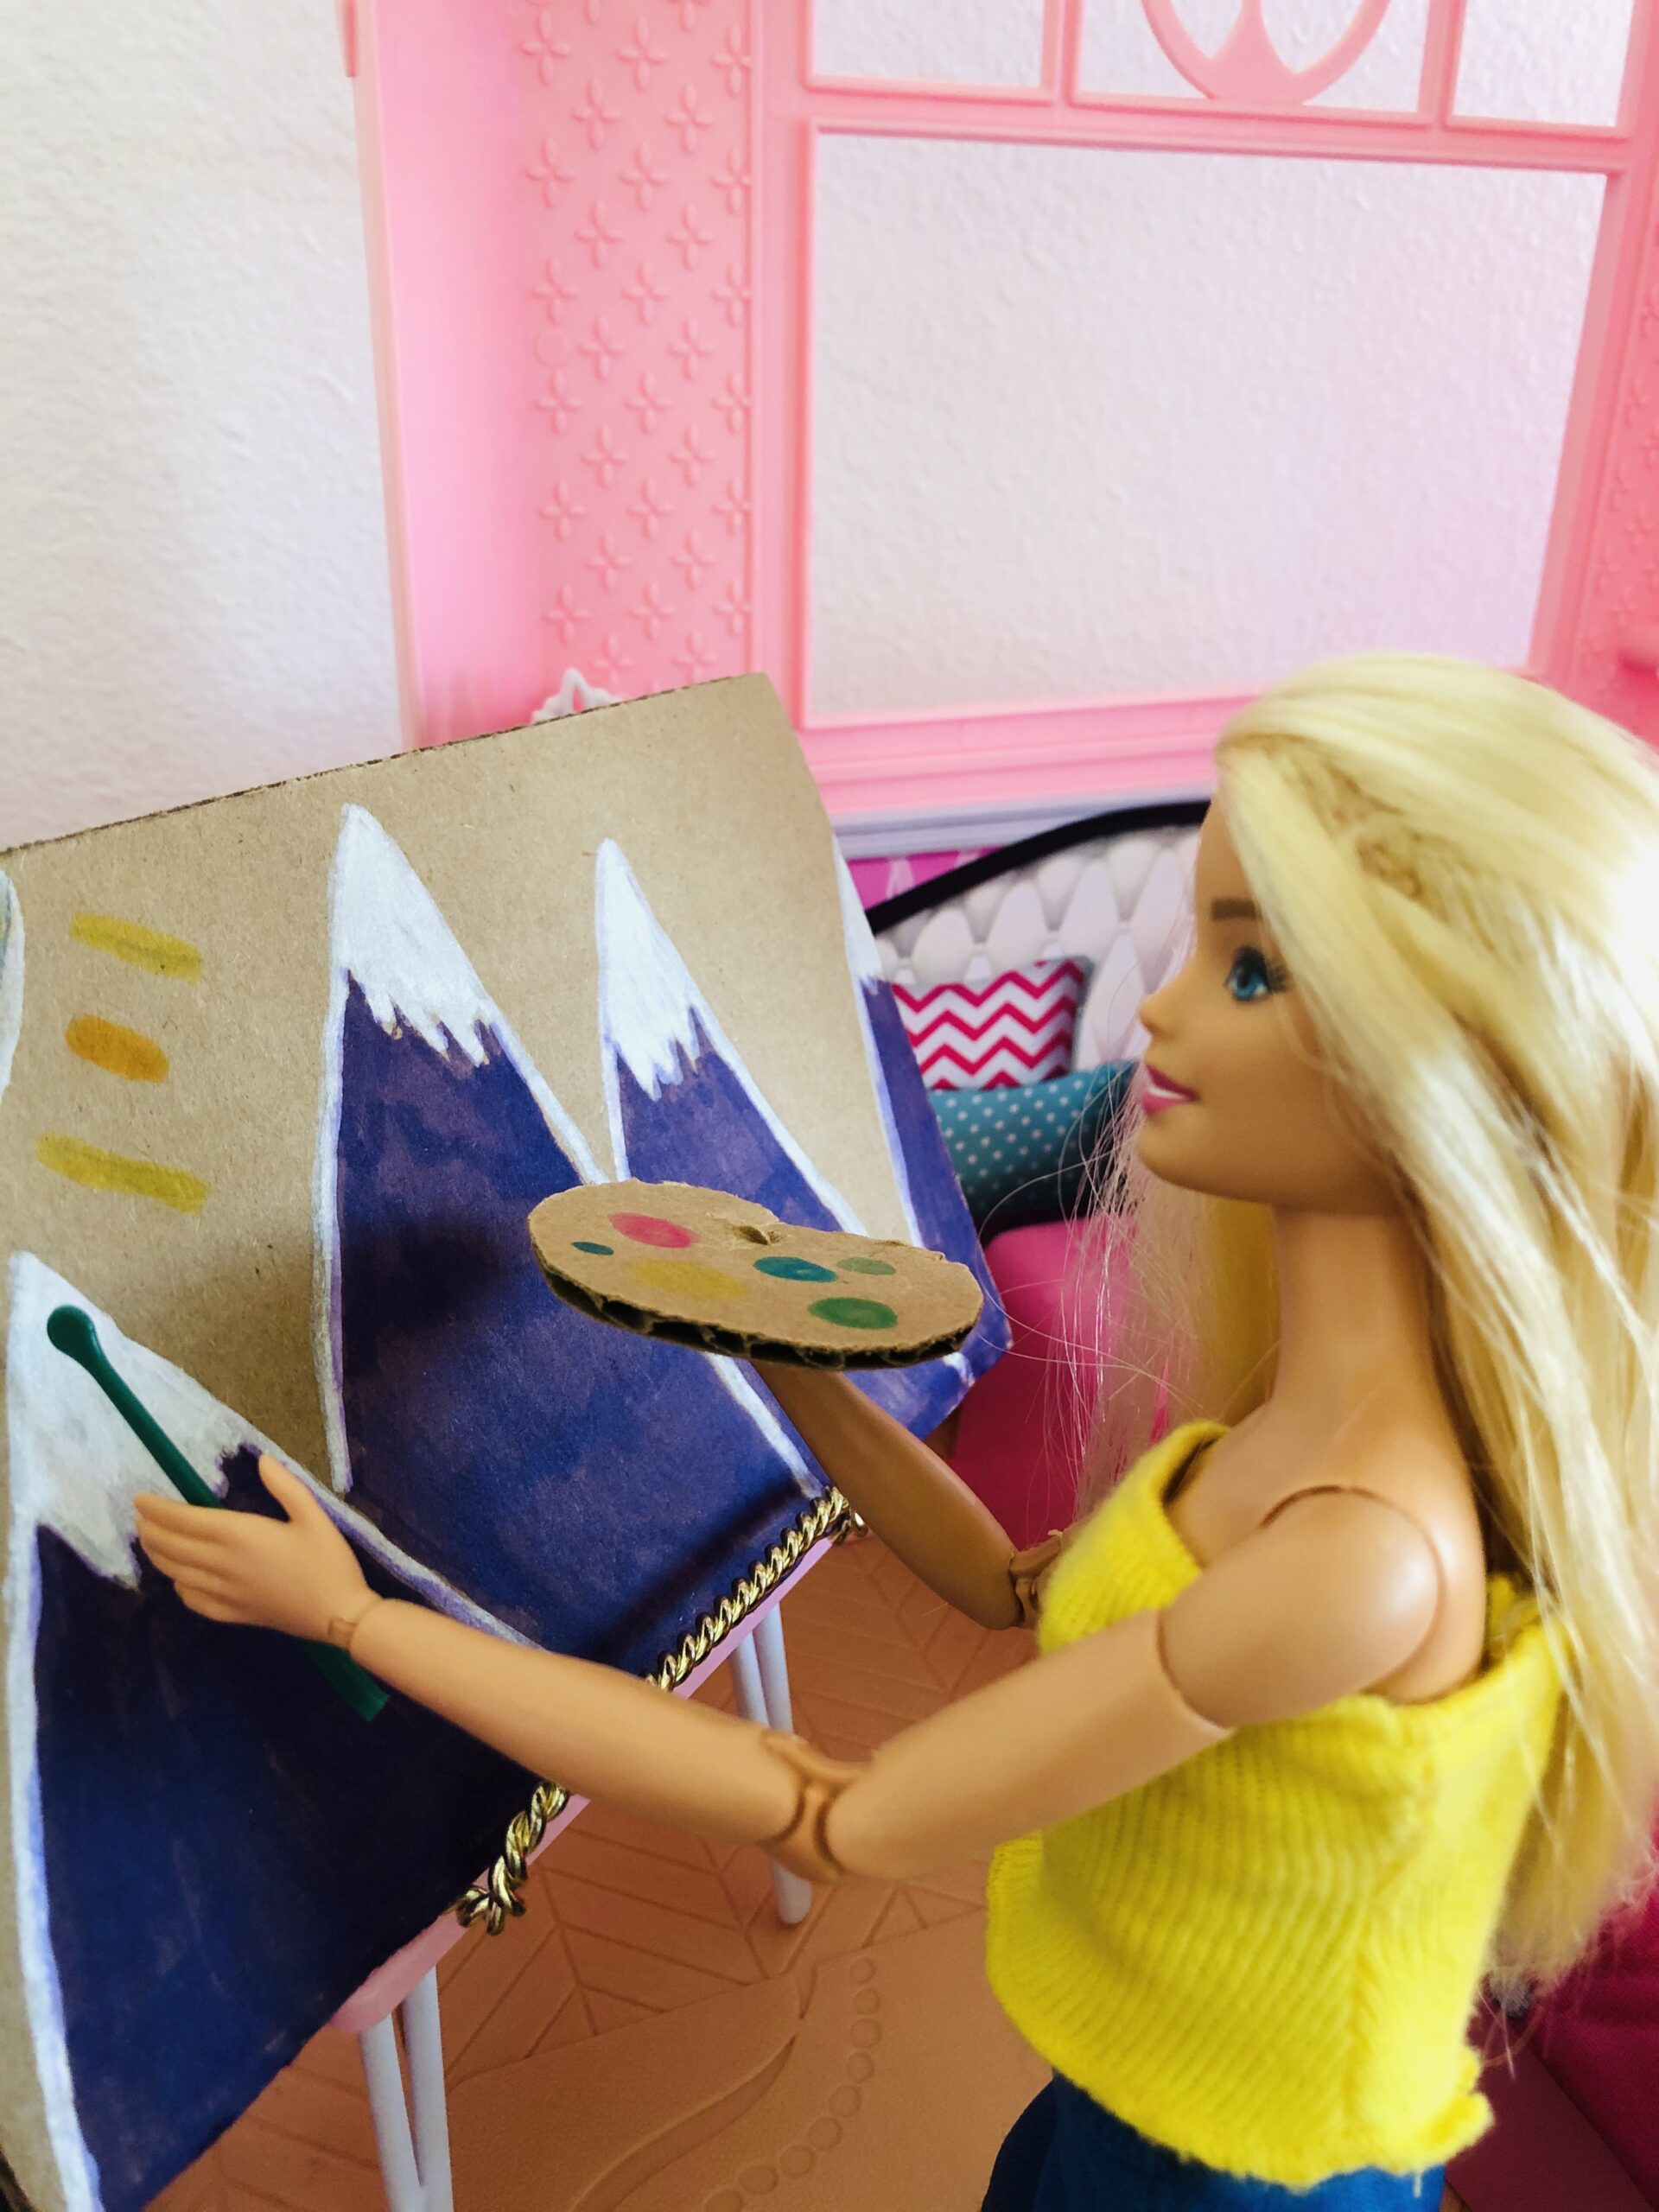 Barbie painting a mural of mountains.